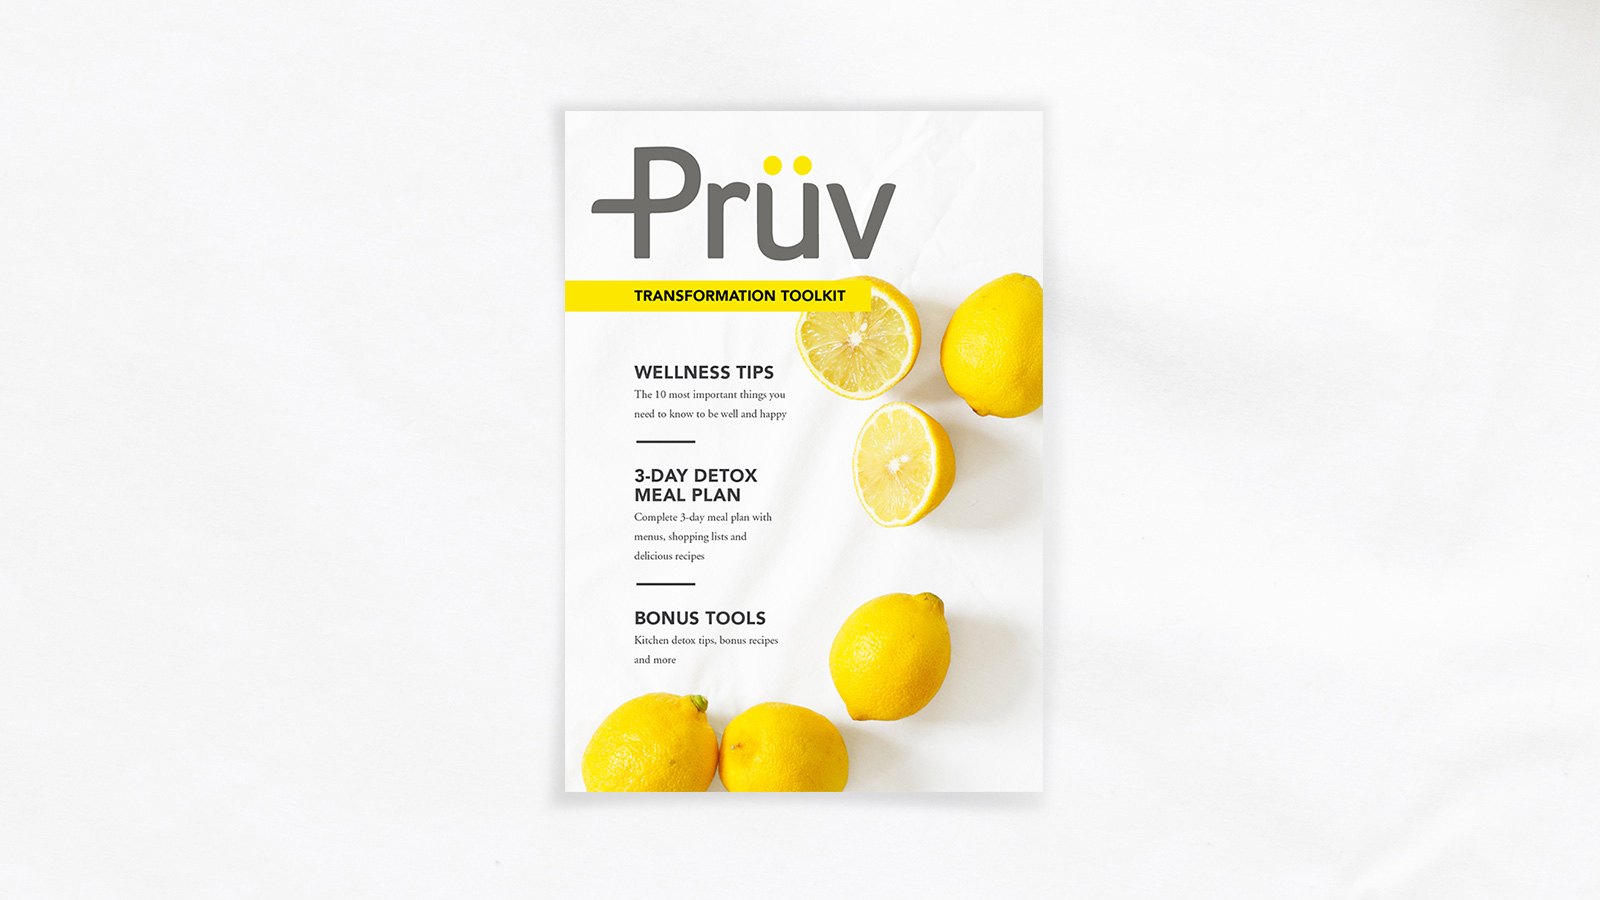 Pruv-Transformation-Toolkit-Cover-Designed-By-ALSO-Agency